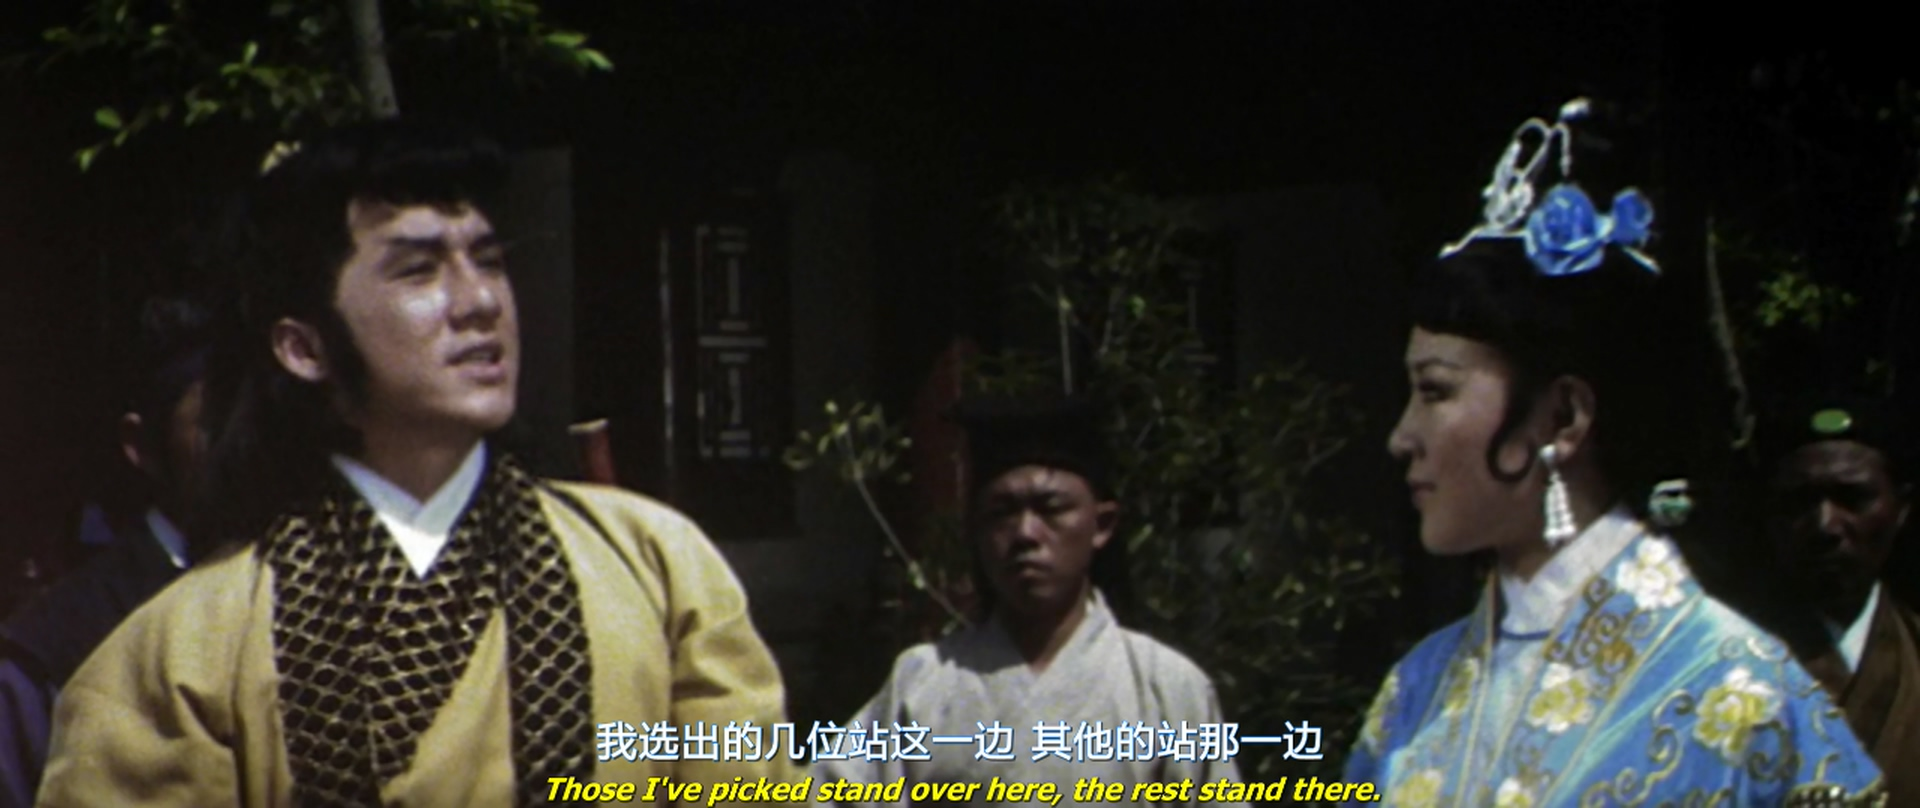 [bbs.yyh3d.com]飞渡卷云山.Magnificent Bodyguards.1978.BluRay.x265.2Audios.A.jpg